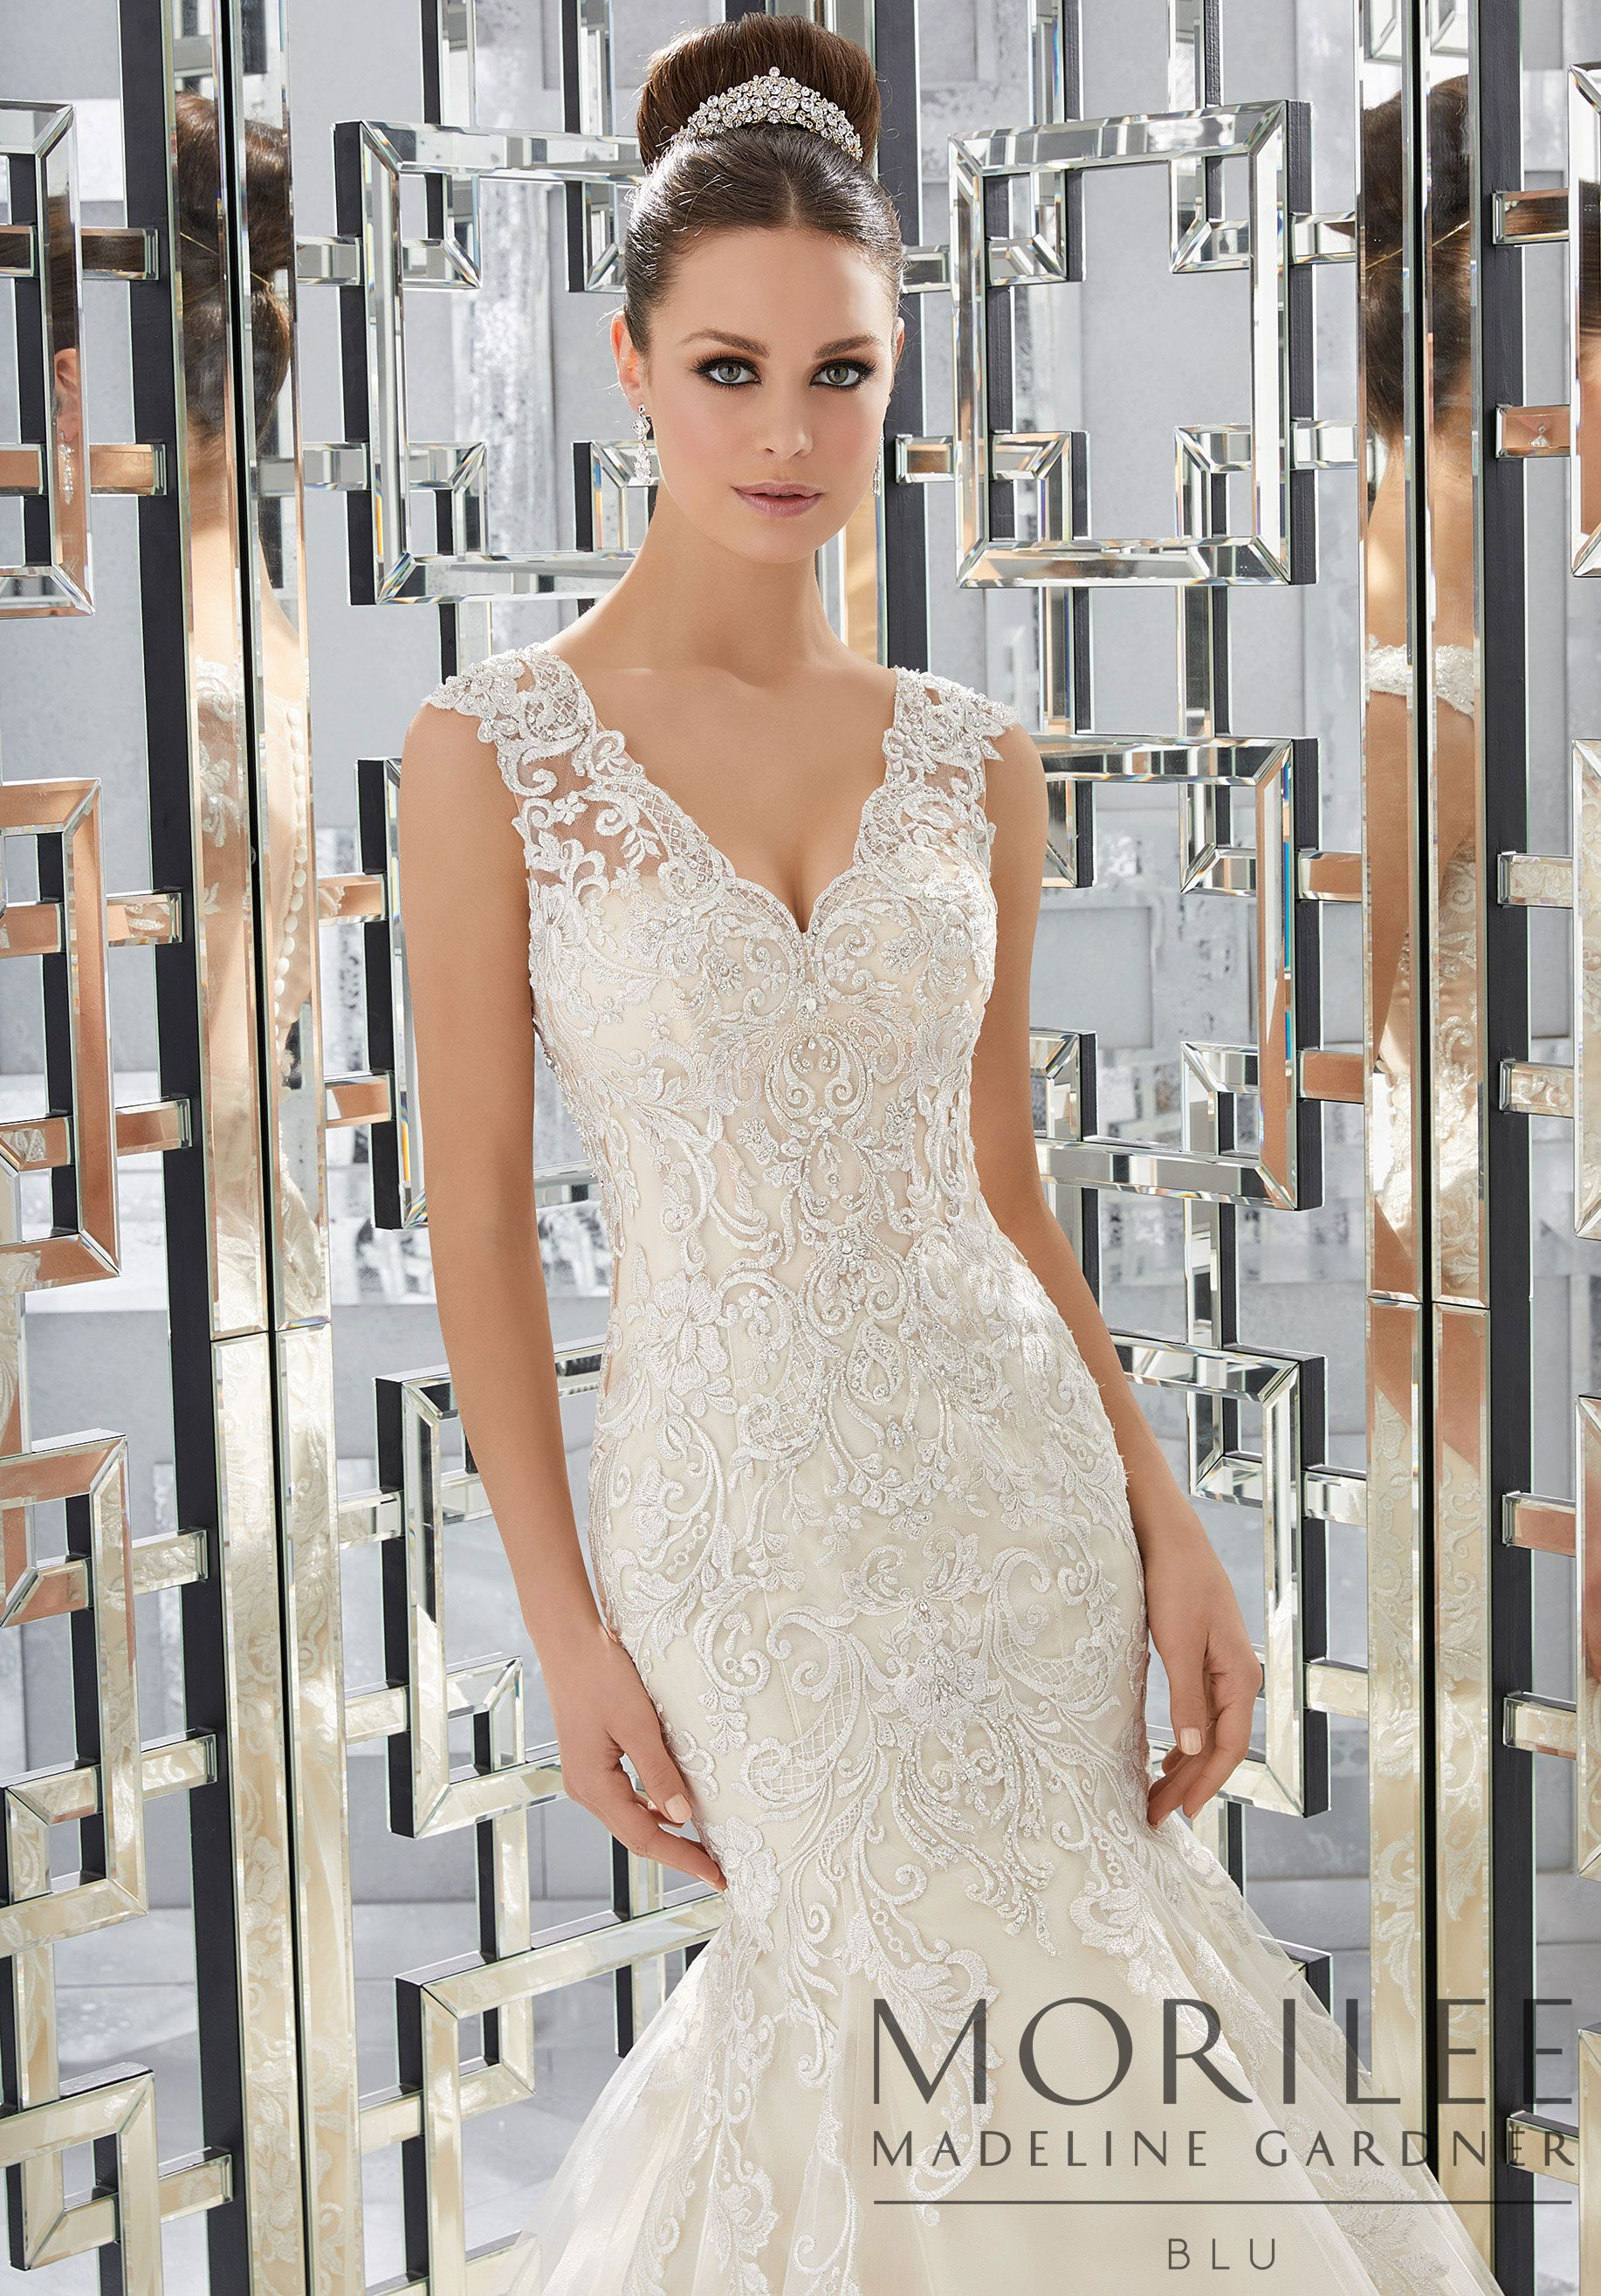 Morilee | Madeline Gardner, Monika Wedding Dress. This Glamorous ...